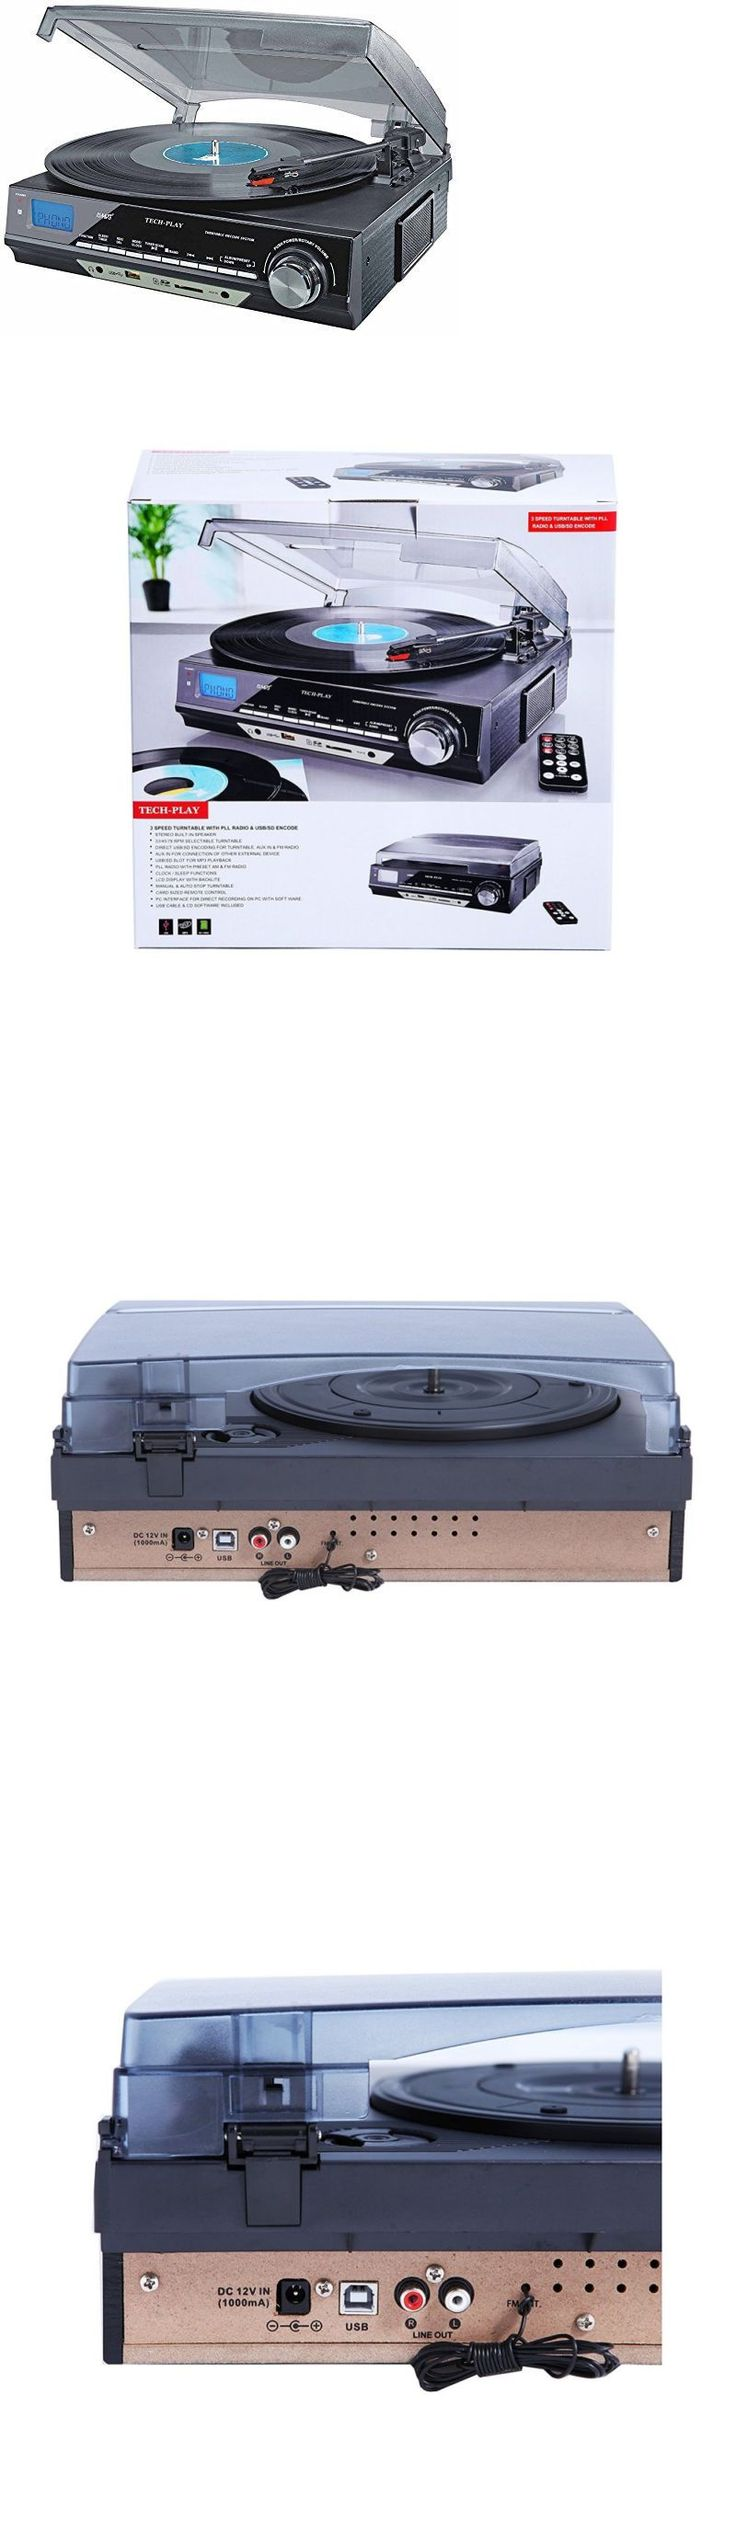 Record Players Home Turntables: Home 3-Speed Turntable Record Player Vinyl Usb Sd Mp3 Encoding Am/Fm Radio New BUY IT NOW ONLY: $59.71